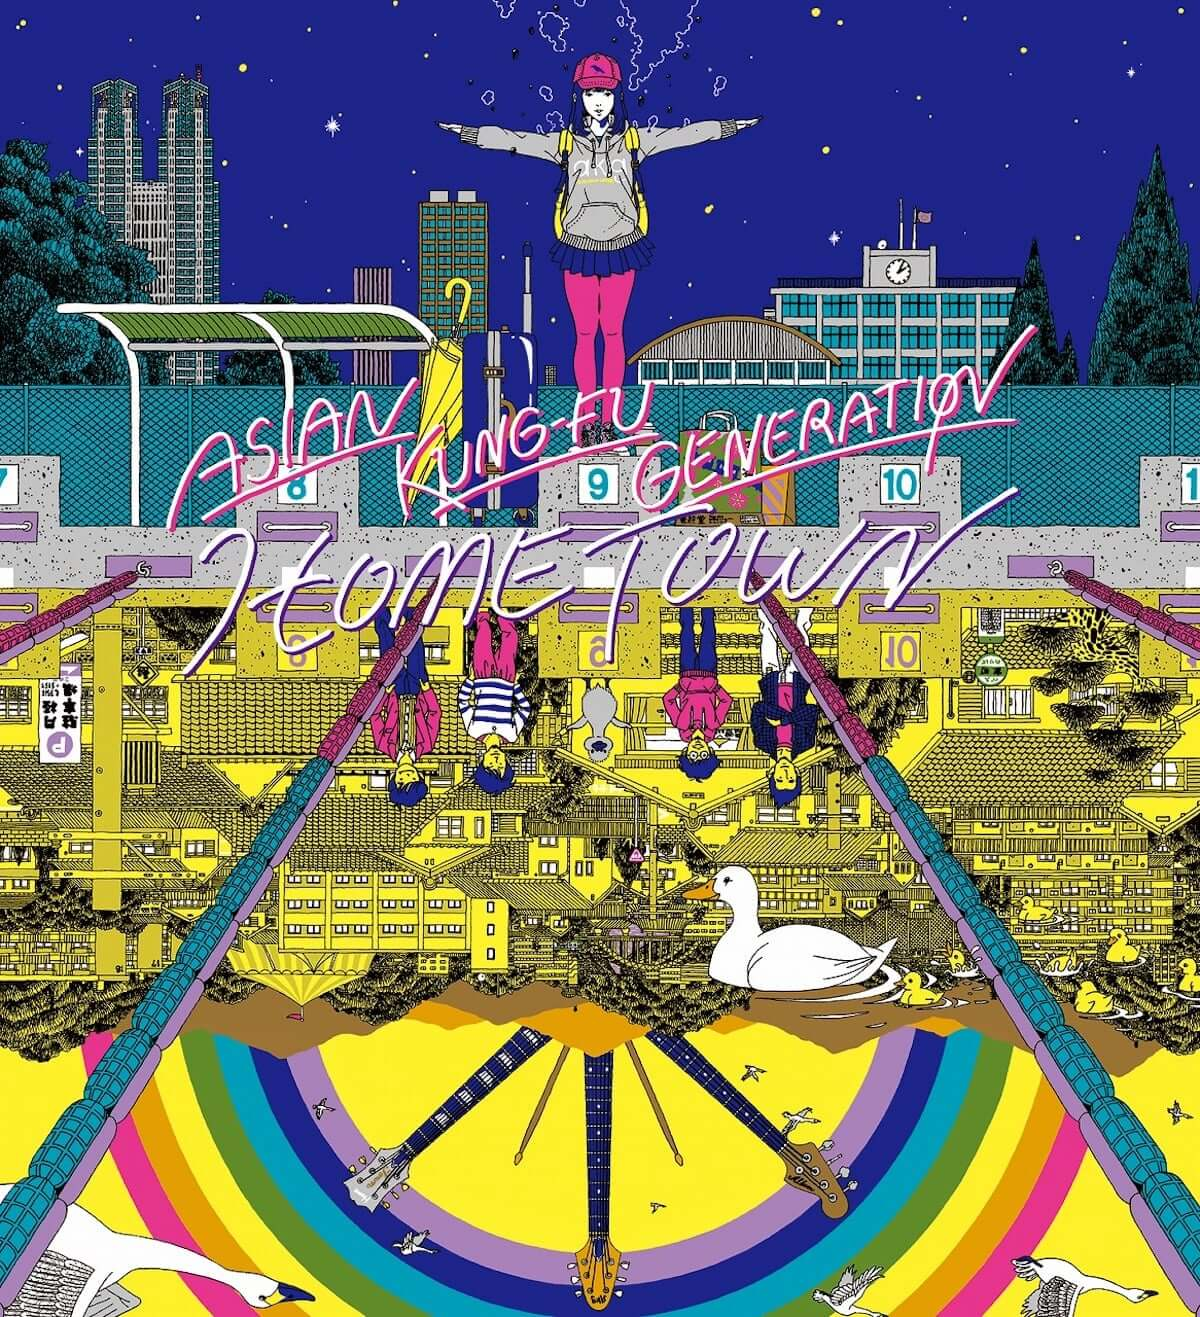 ASIAN KUNG-FU GENERATION、新曲MVを2本同時公開 music181227_AKG02-1200x1317